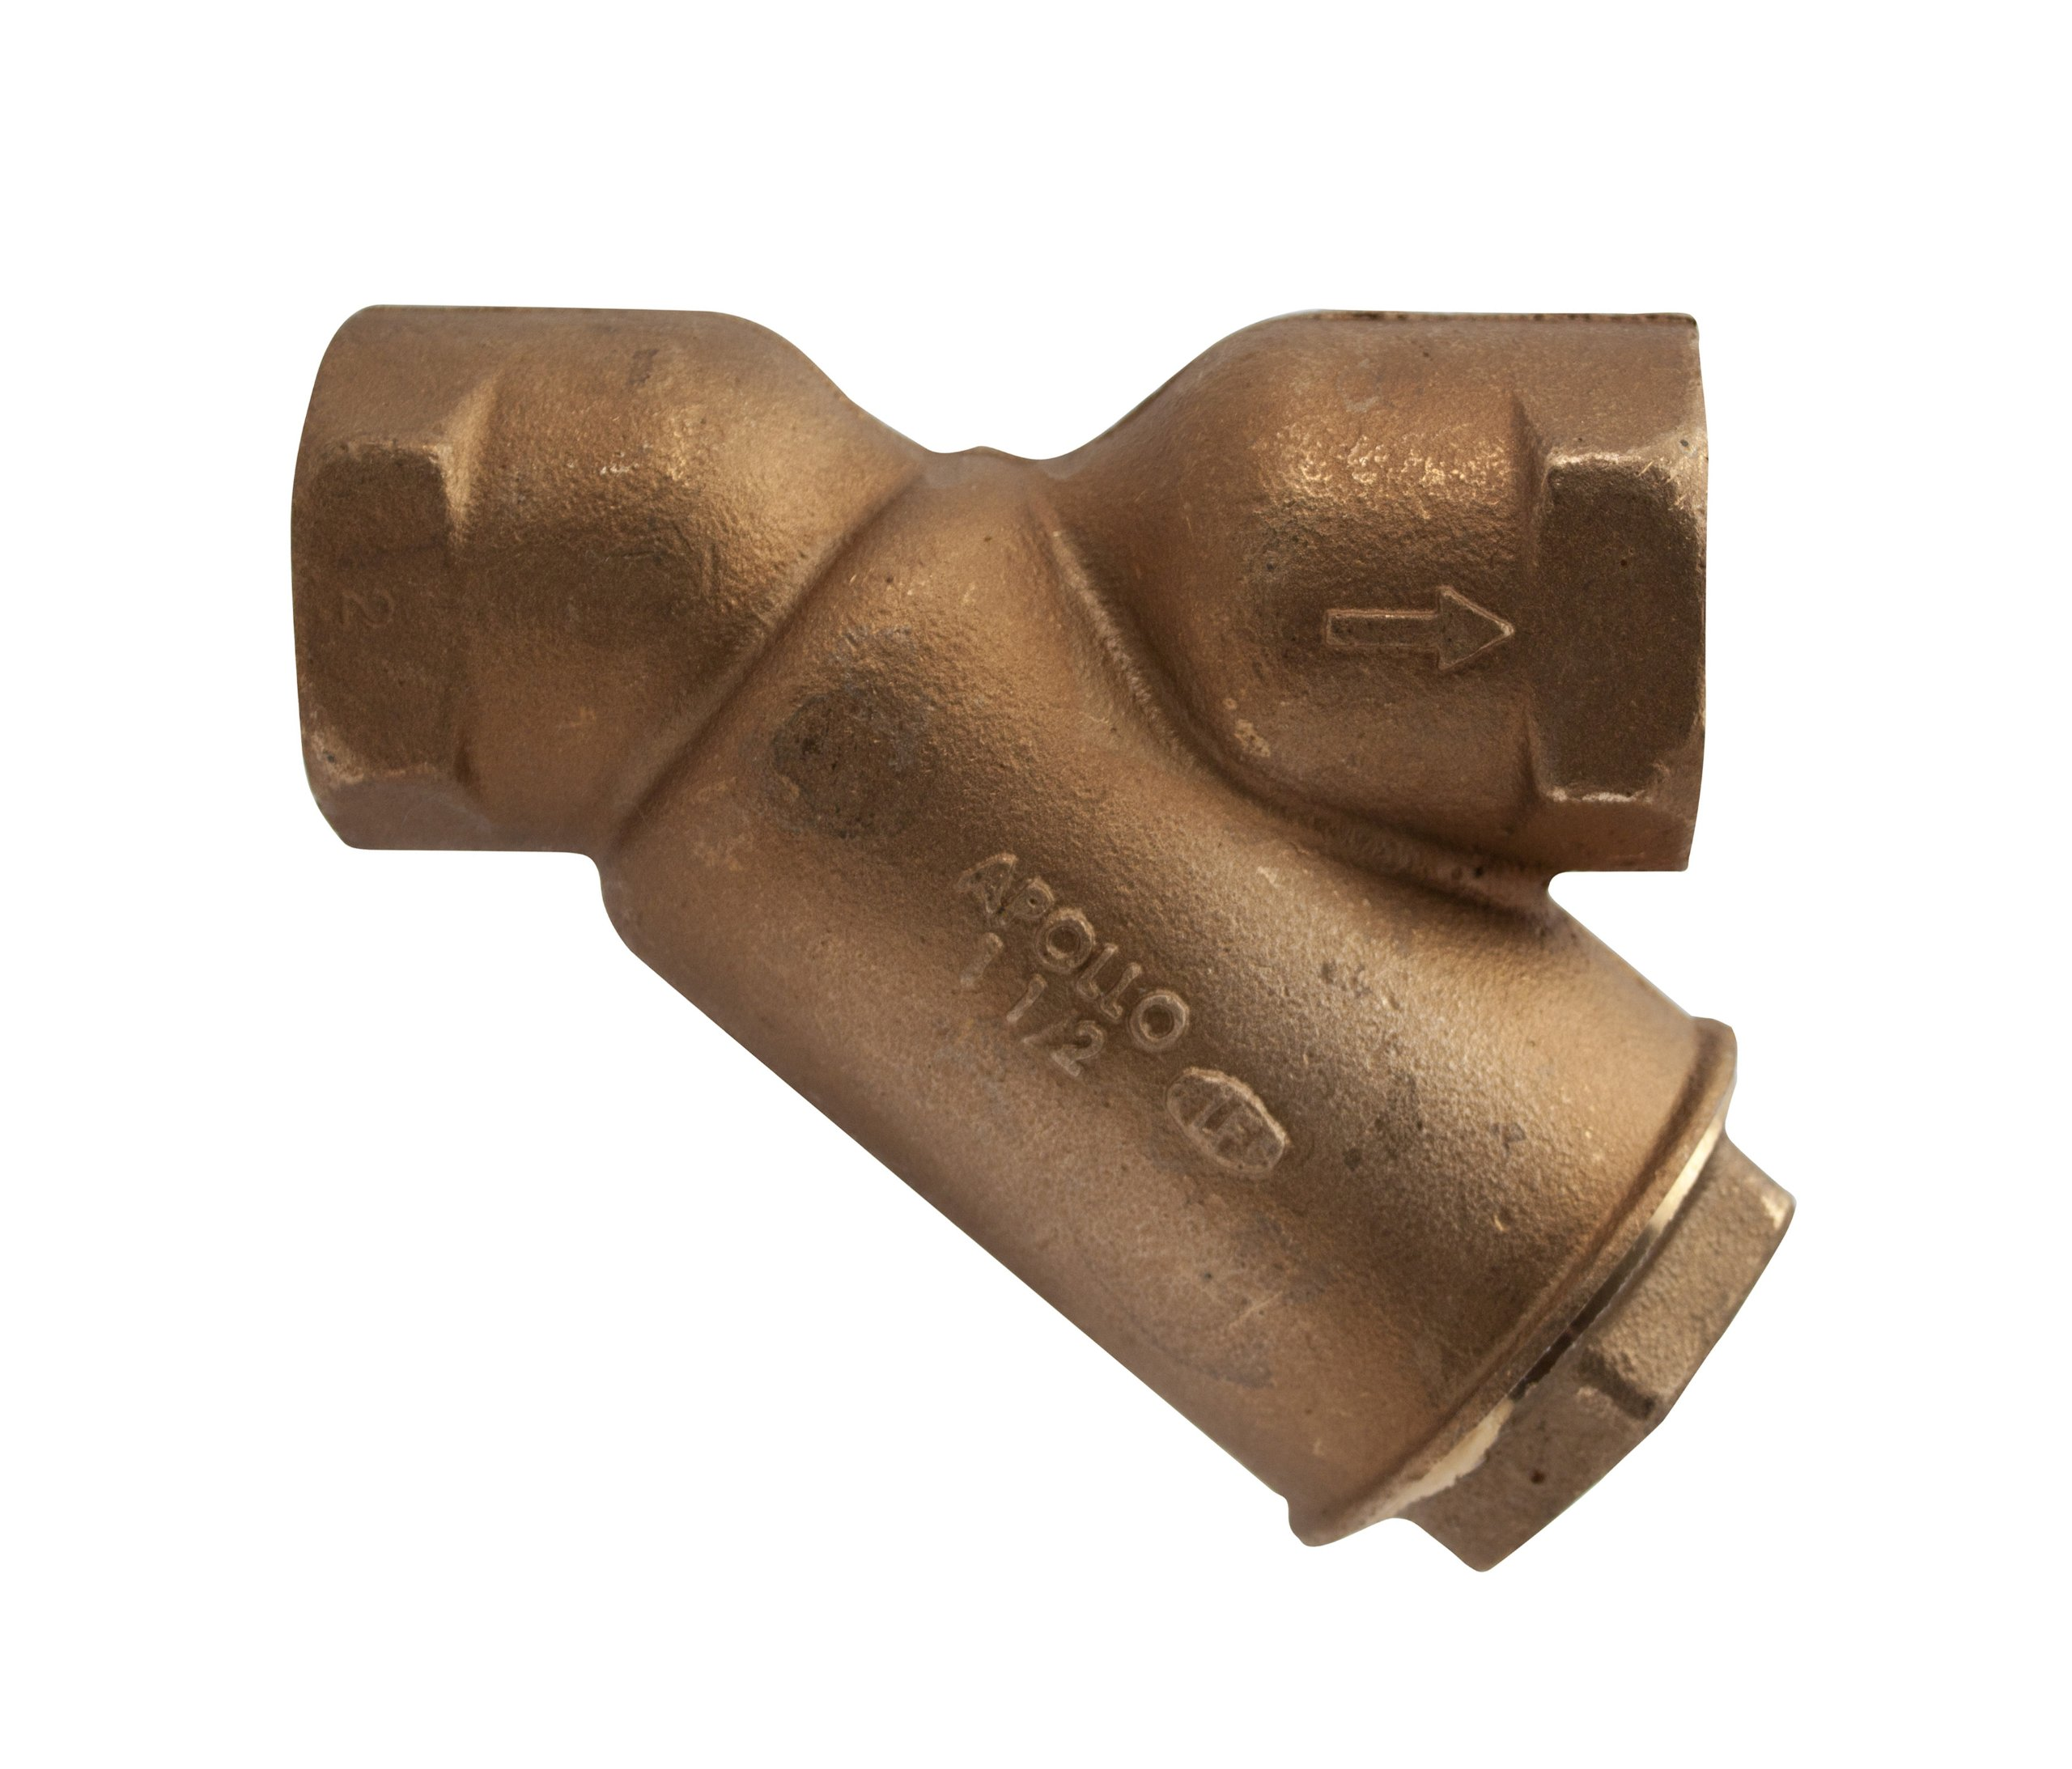 Apollo Valve 59LF Series Bronze Lead Free Y-Strainer with 1/2'' Tapped Cap, 3/4'' NPT Female, 20 Mesh Screen by Apollo Valve